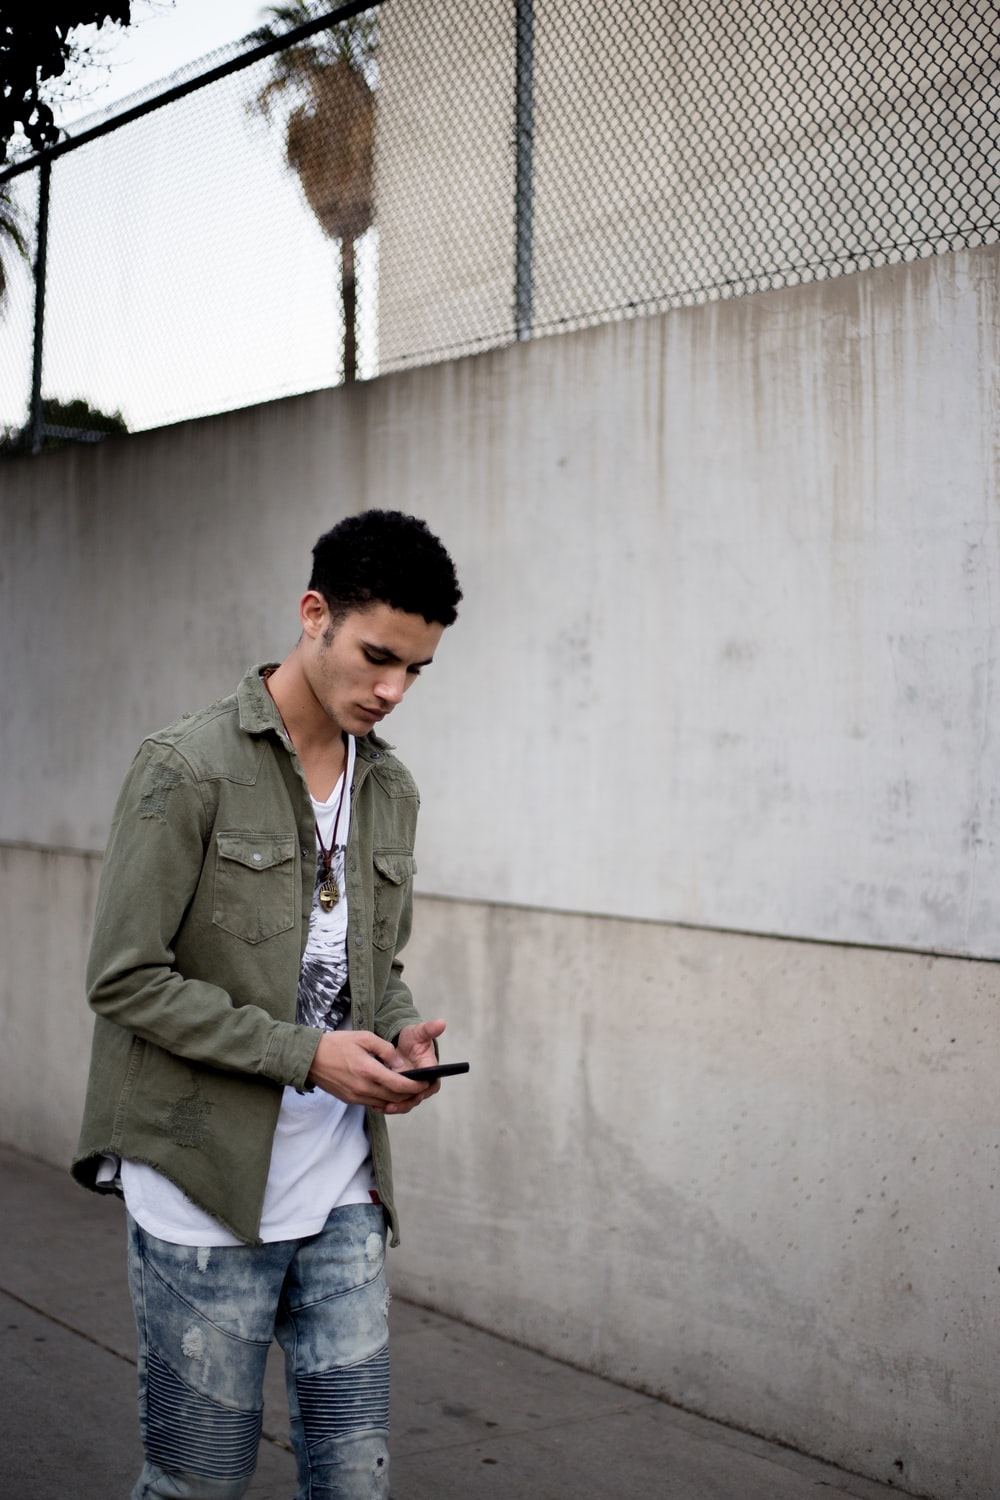 man looking down while holding phone near wall